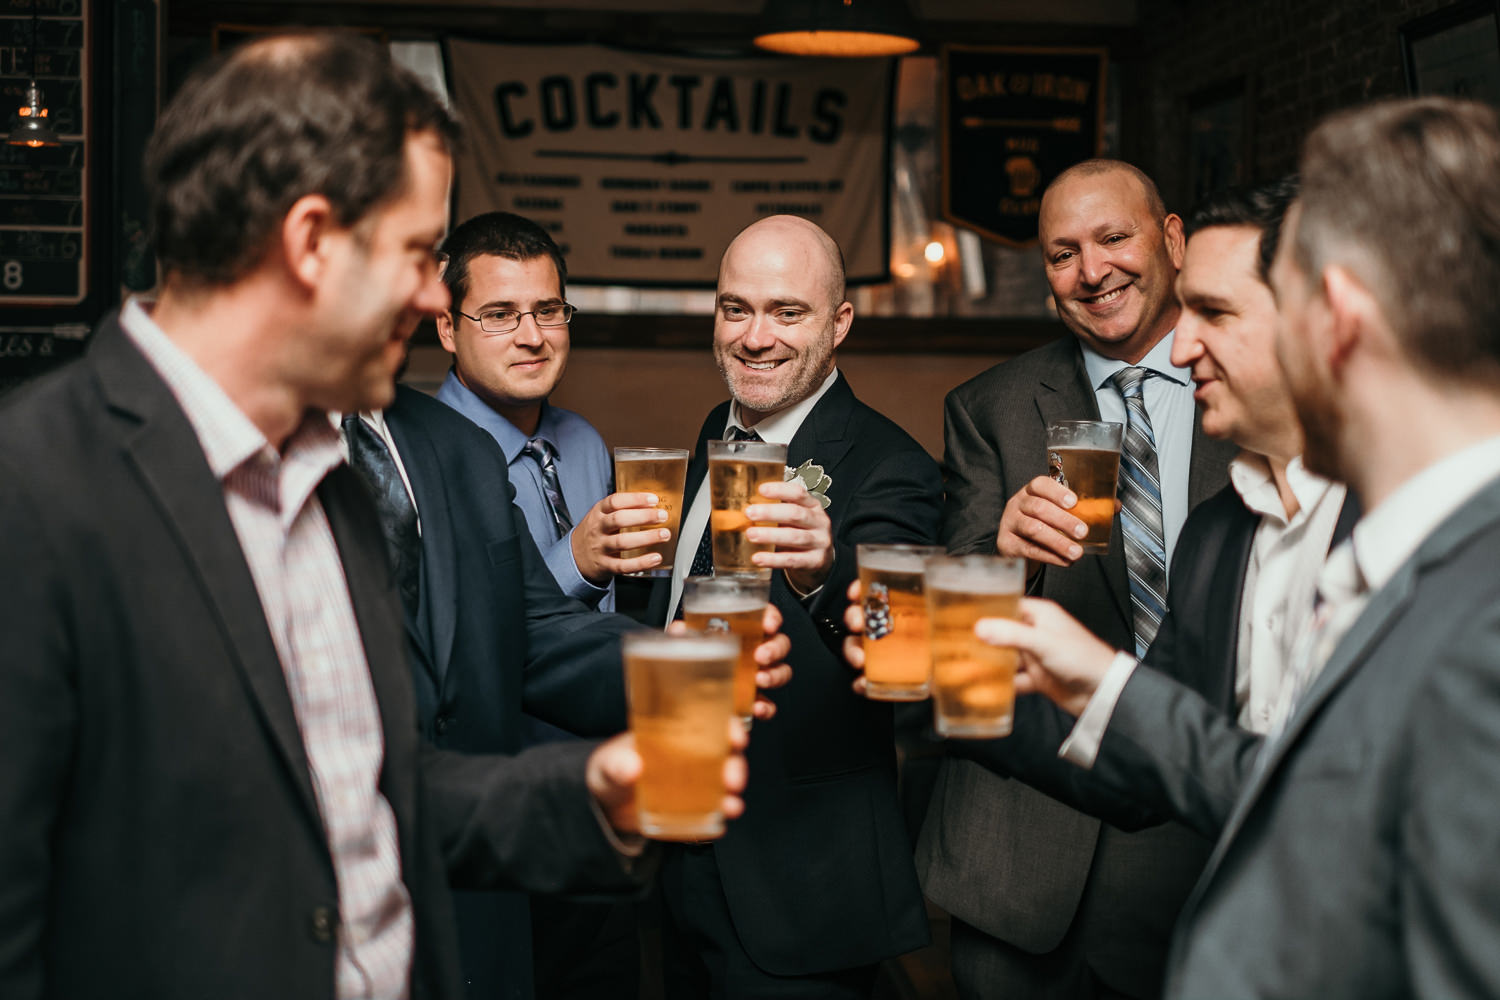 groom and groomsmen toasting with beer glasses